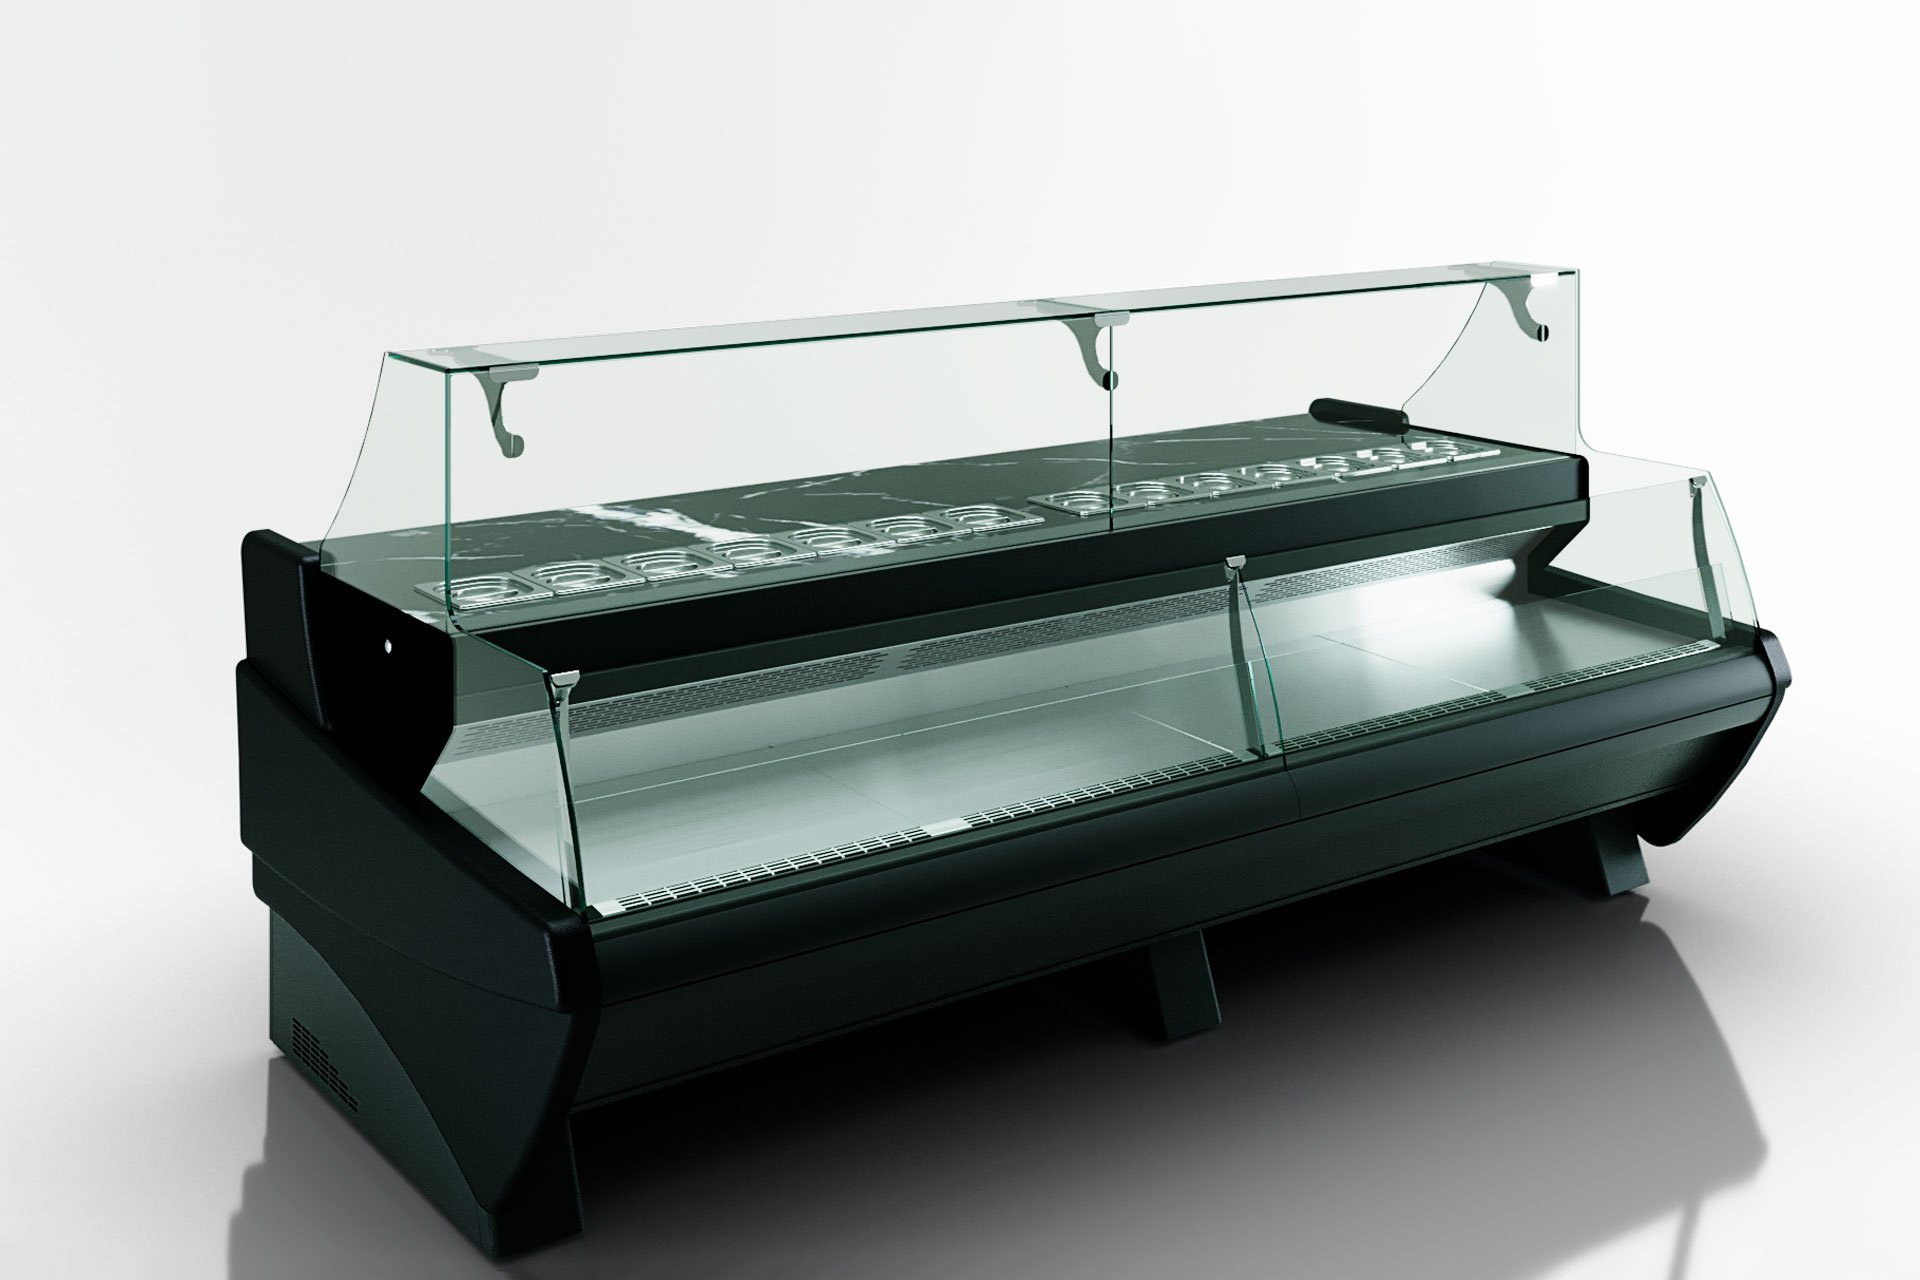 SYMPHONY LUXE MG 120 SYMPHONY LUXE MG 120 SUSHI/PIZZA COMBI L M